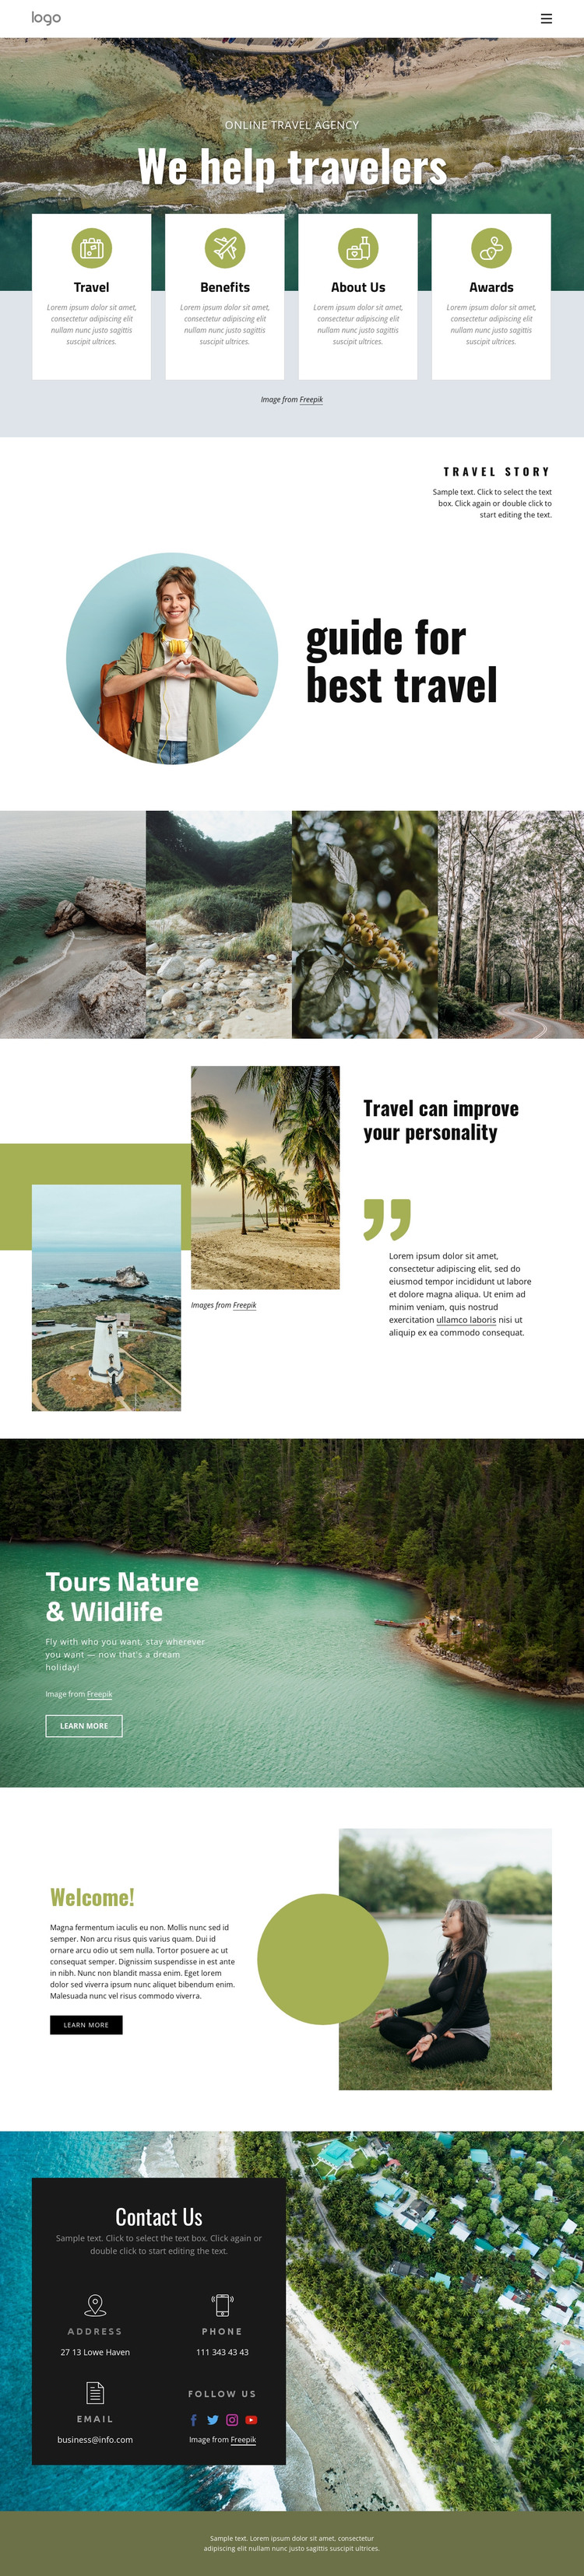 We help manage your trip Web Design